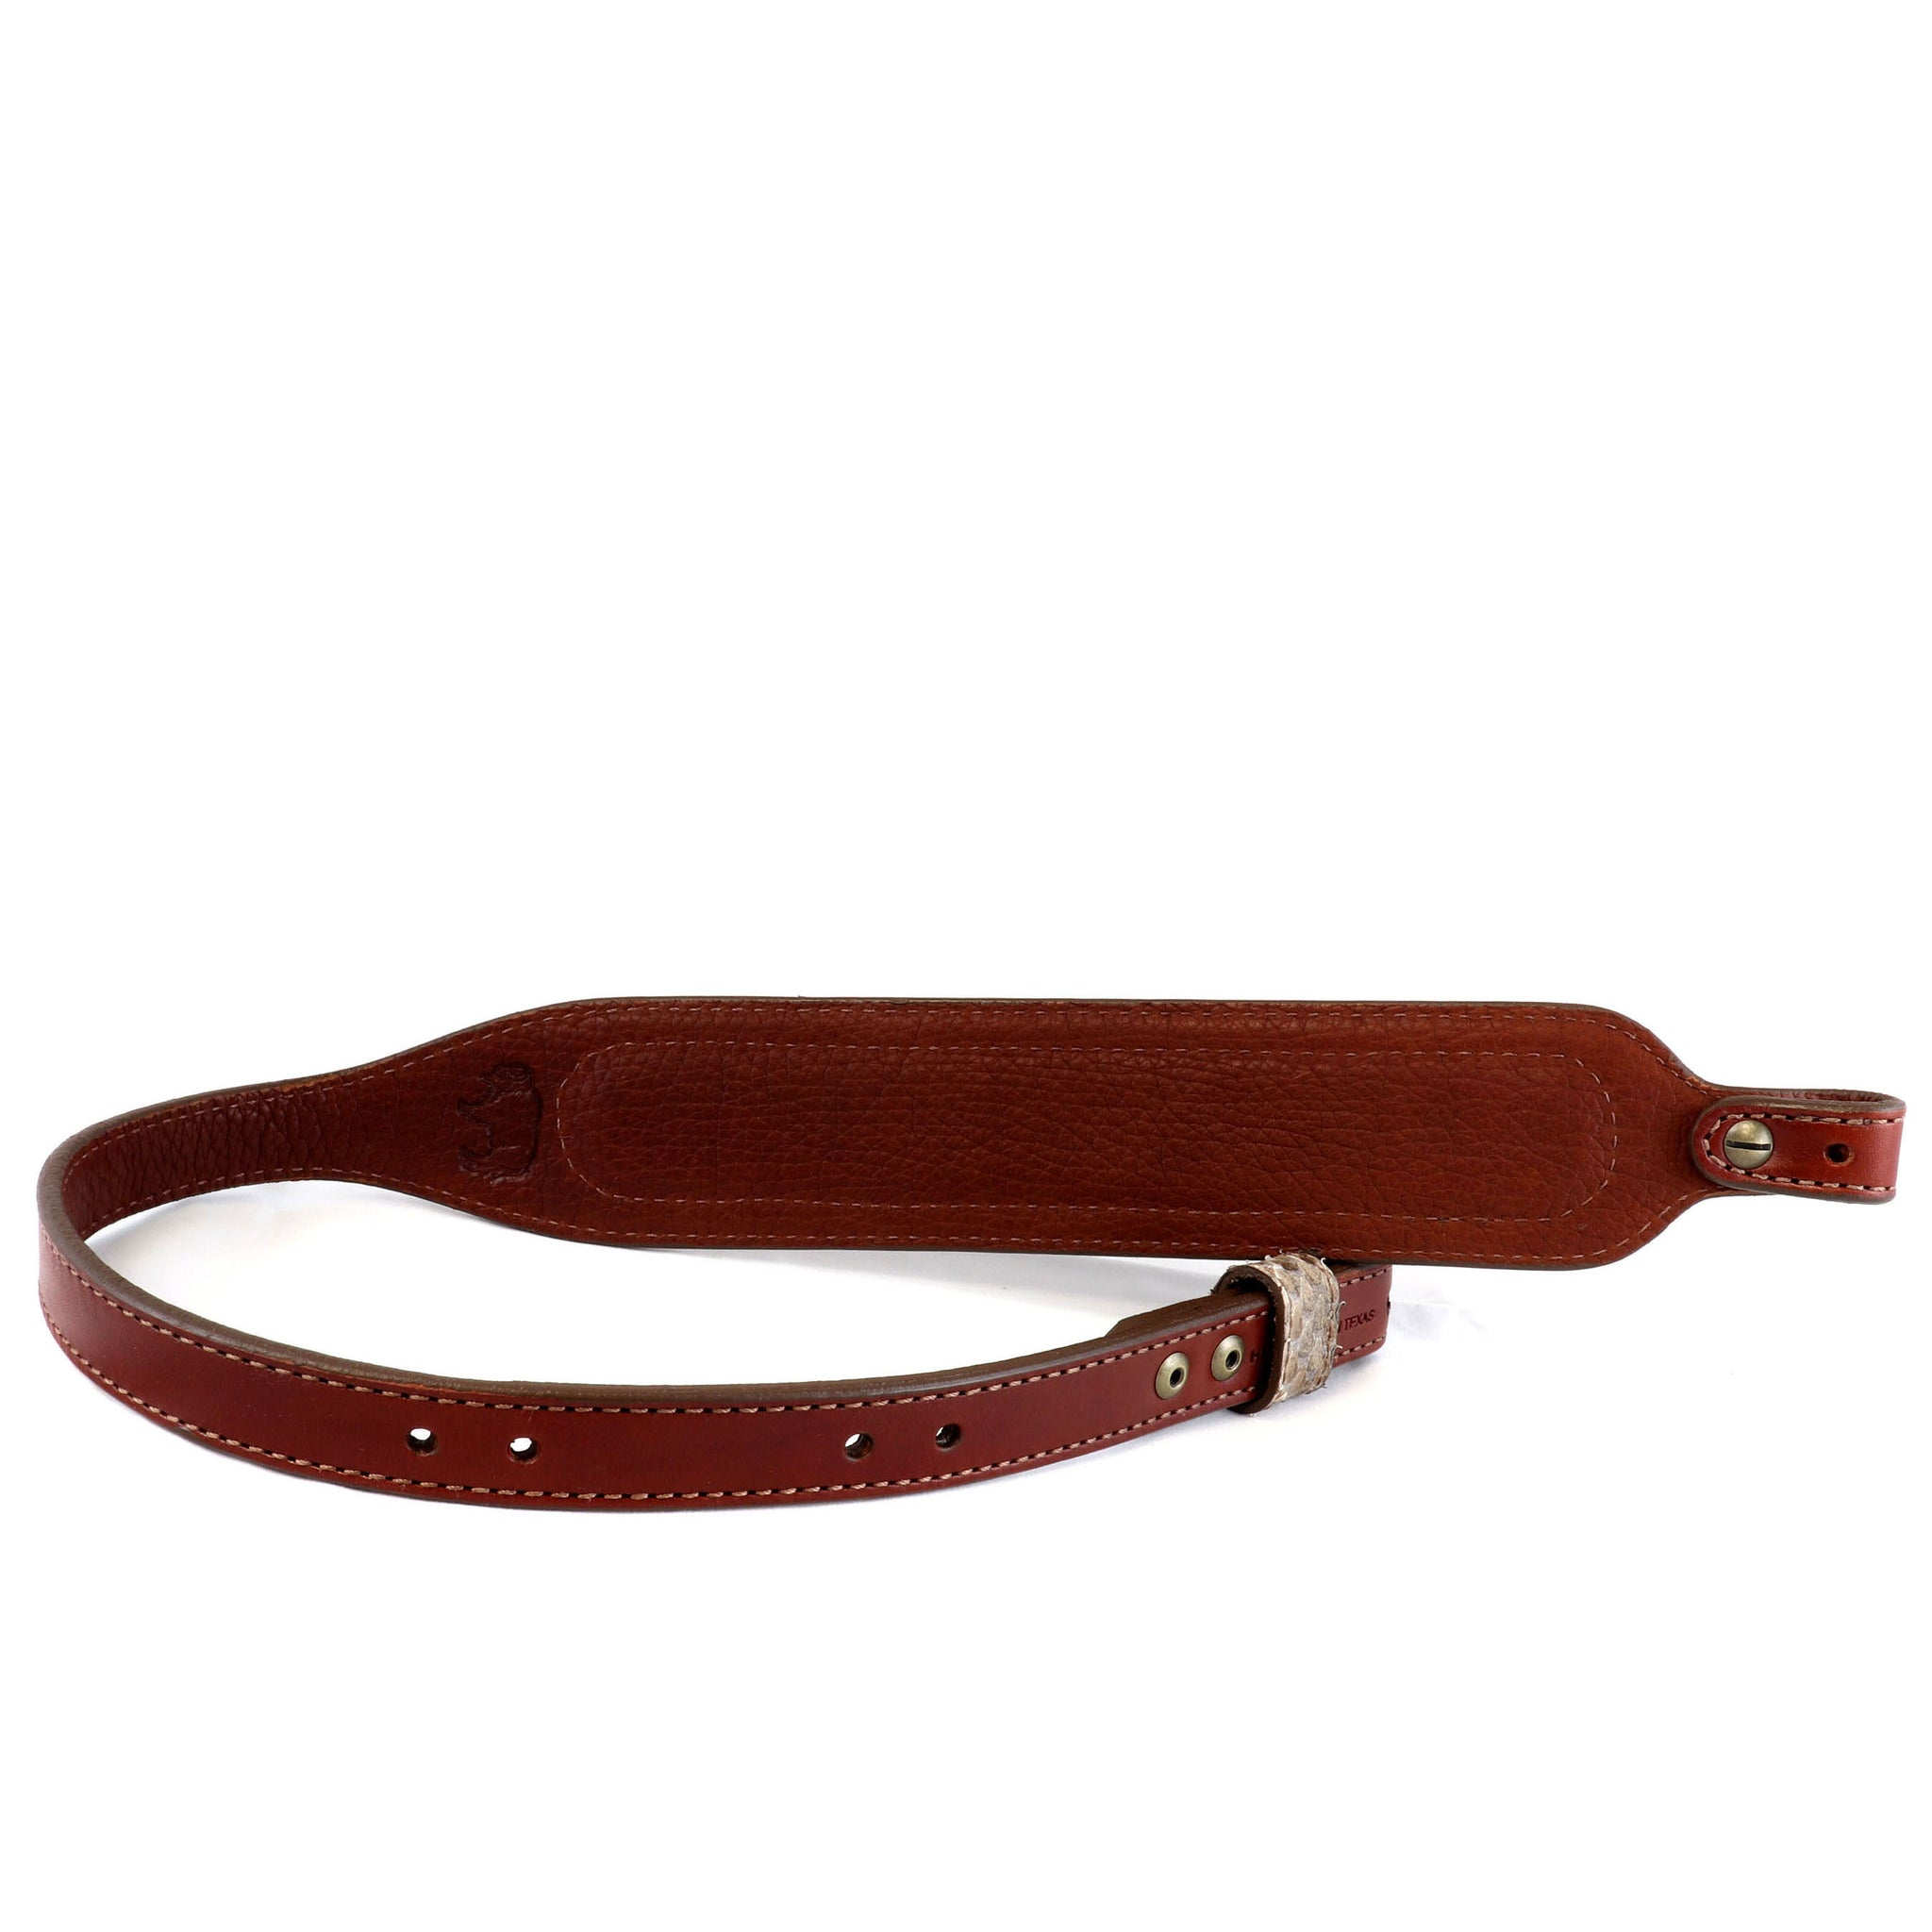 Rifle Sling with Genuine Rattlesnake In-lay